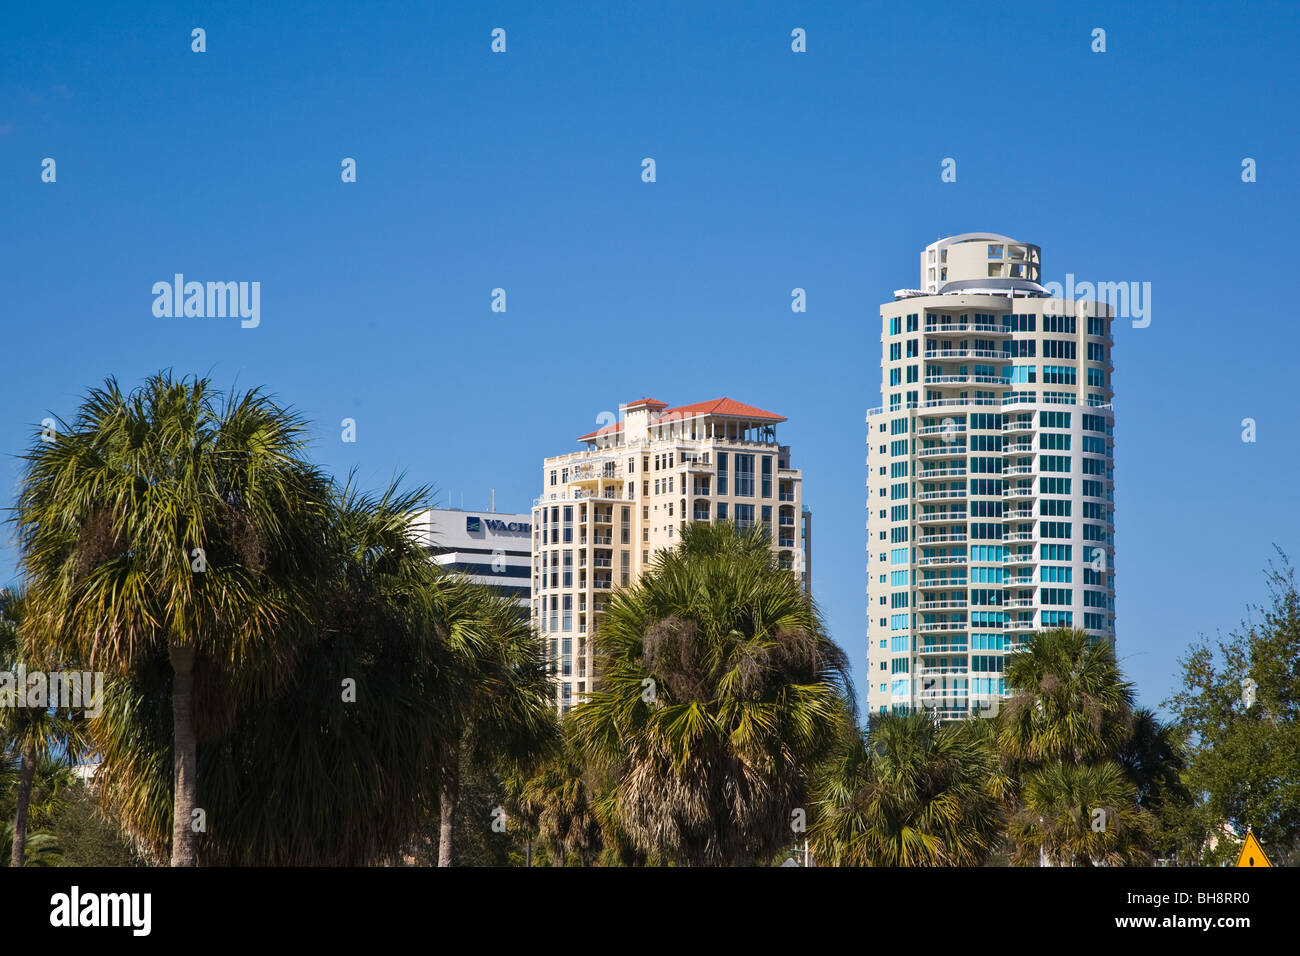 Tall buildings in downtown St Petersburg Florida - Stock Image